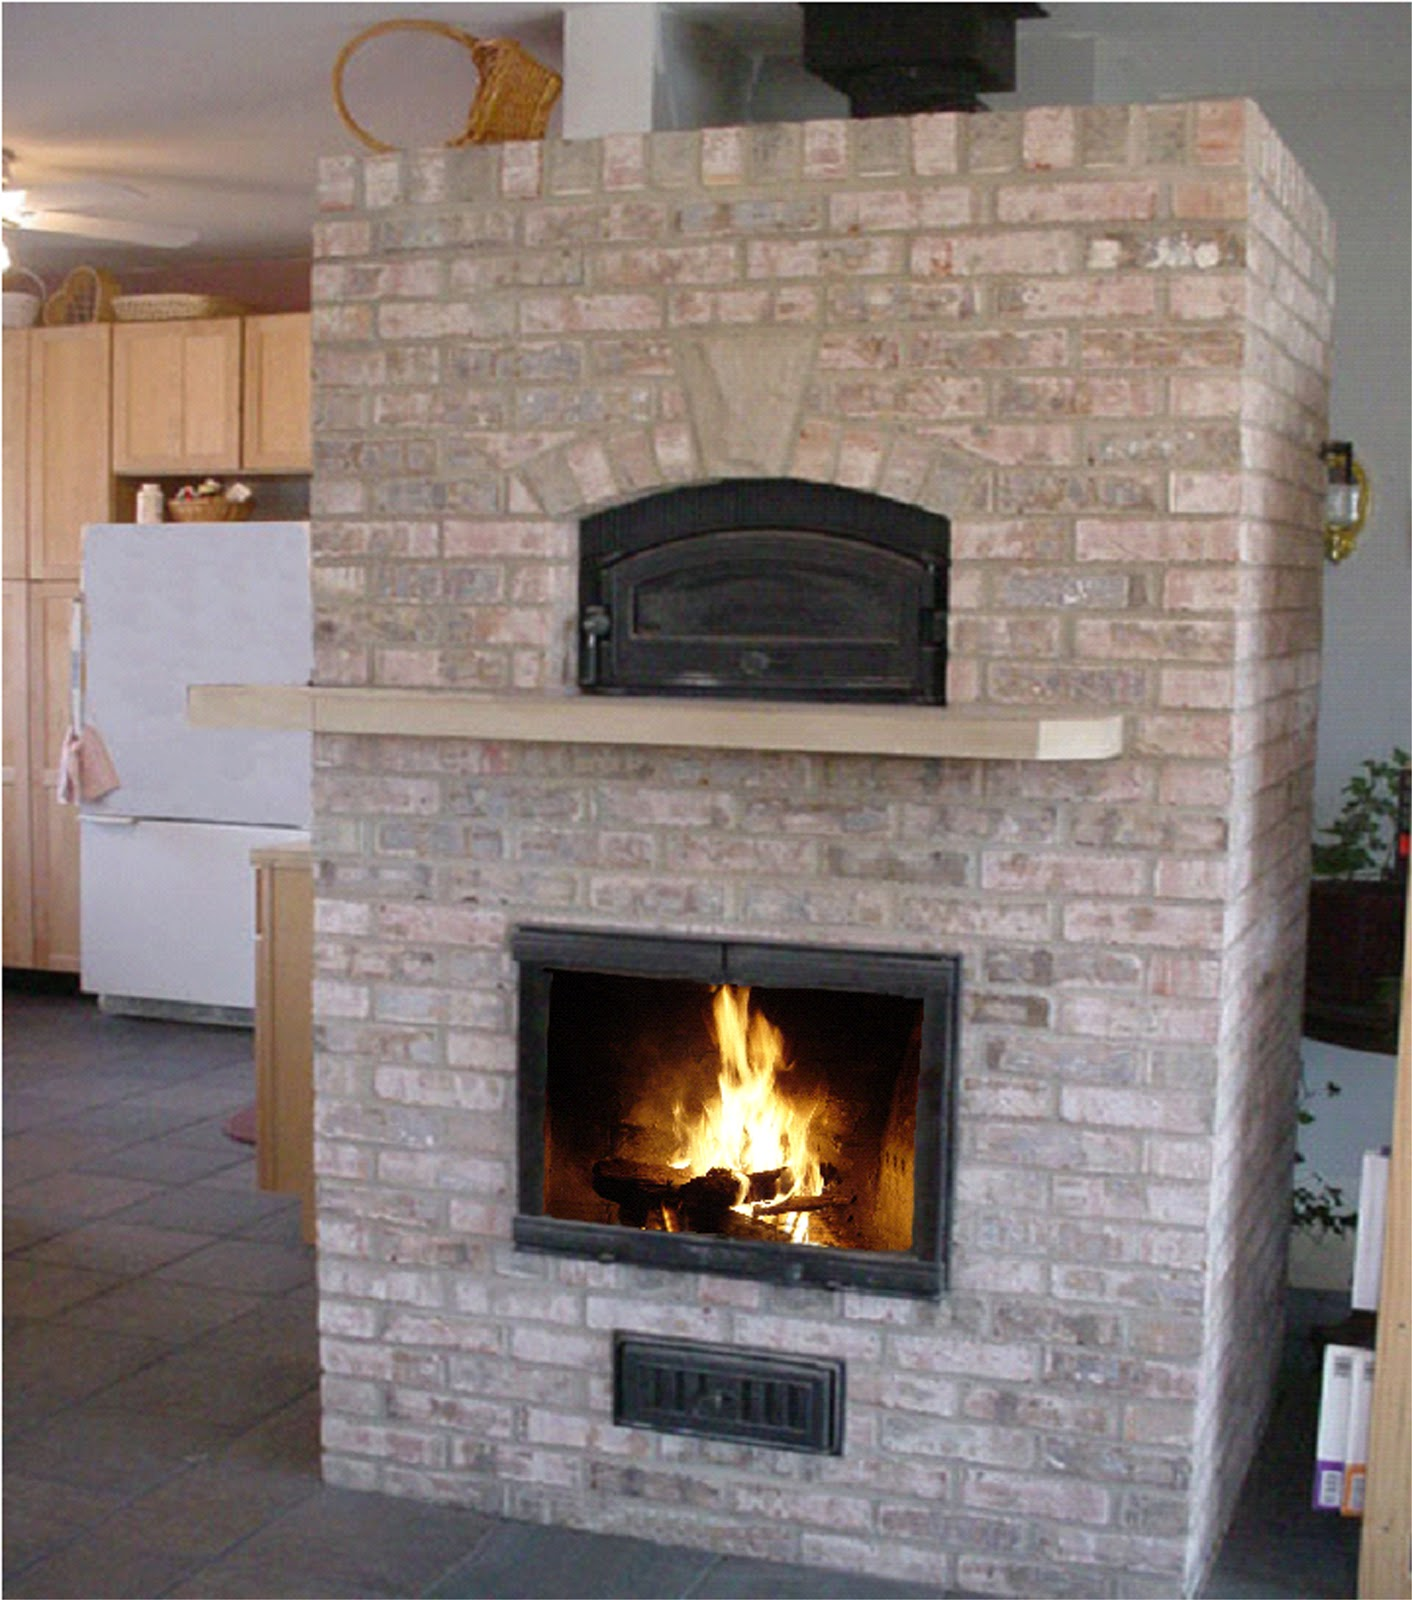 Mortar For Wood Fired Oven : Wood fired heating and cooking be prepared with a masonry